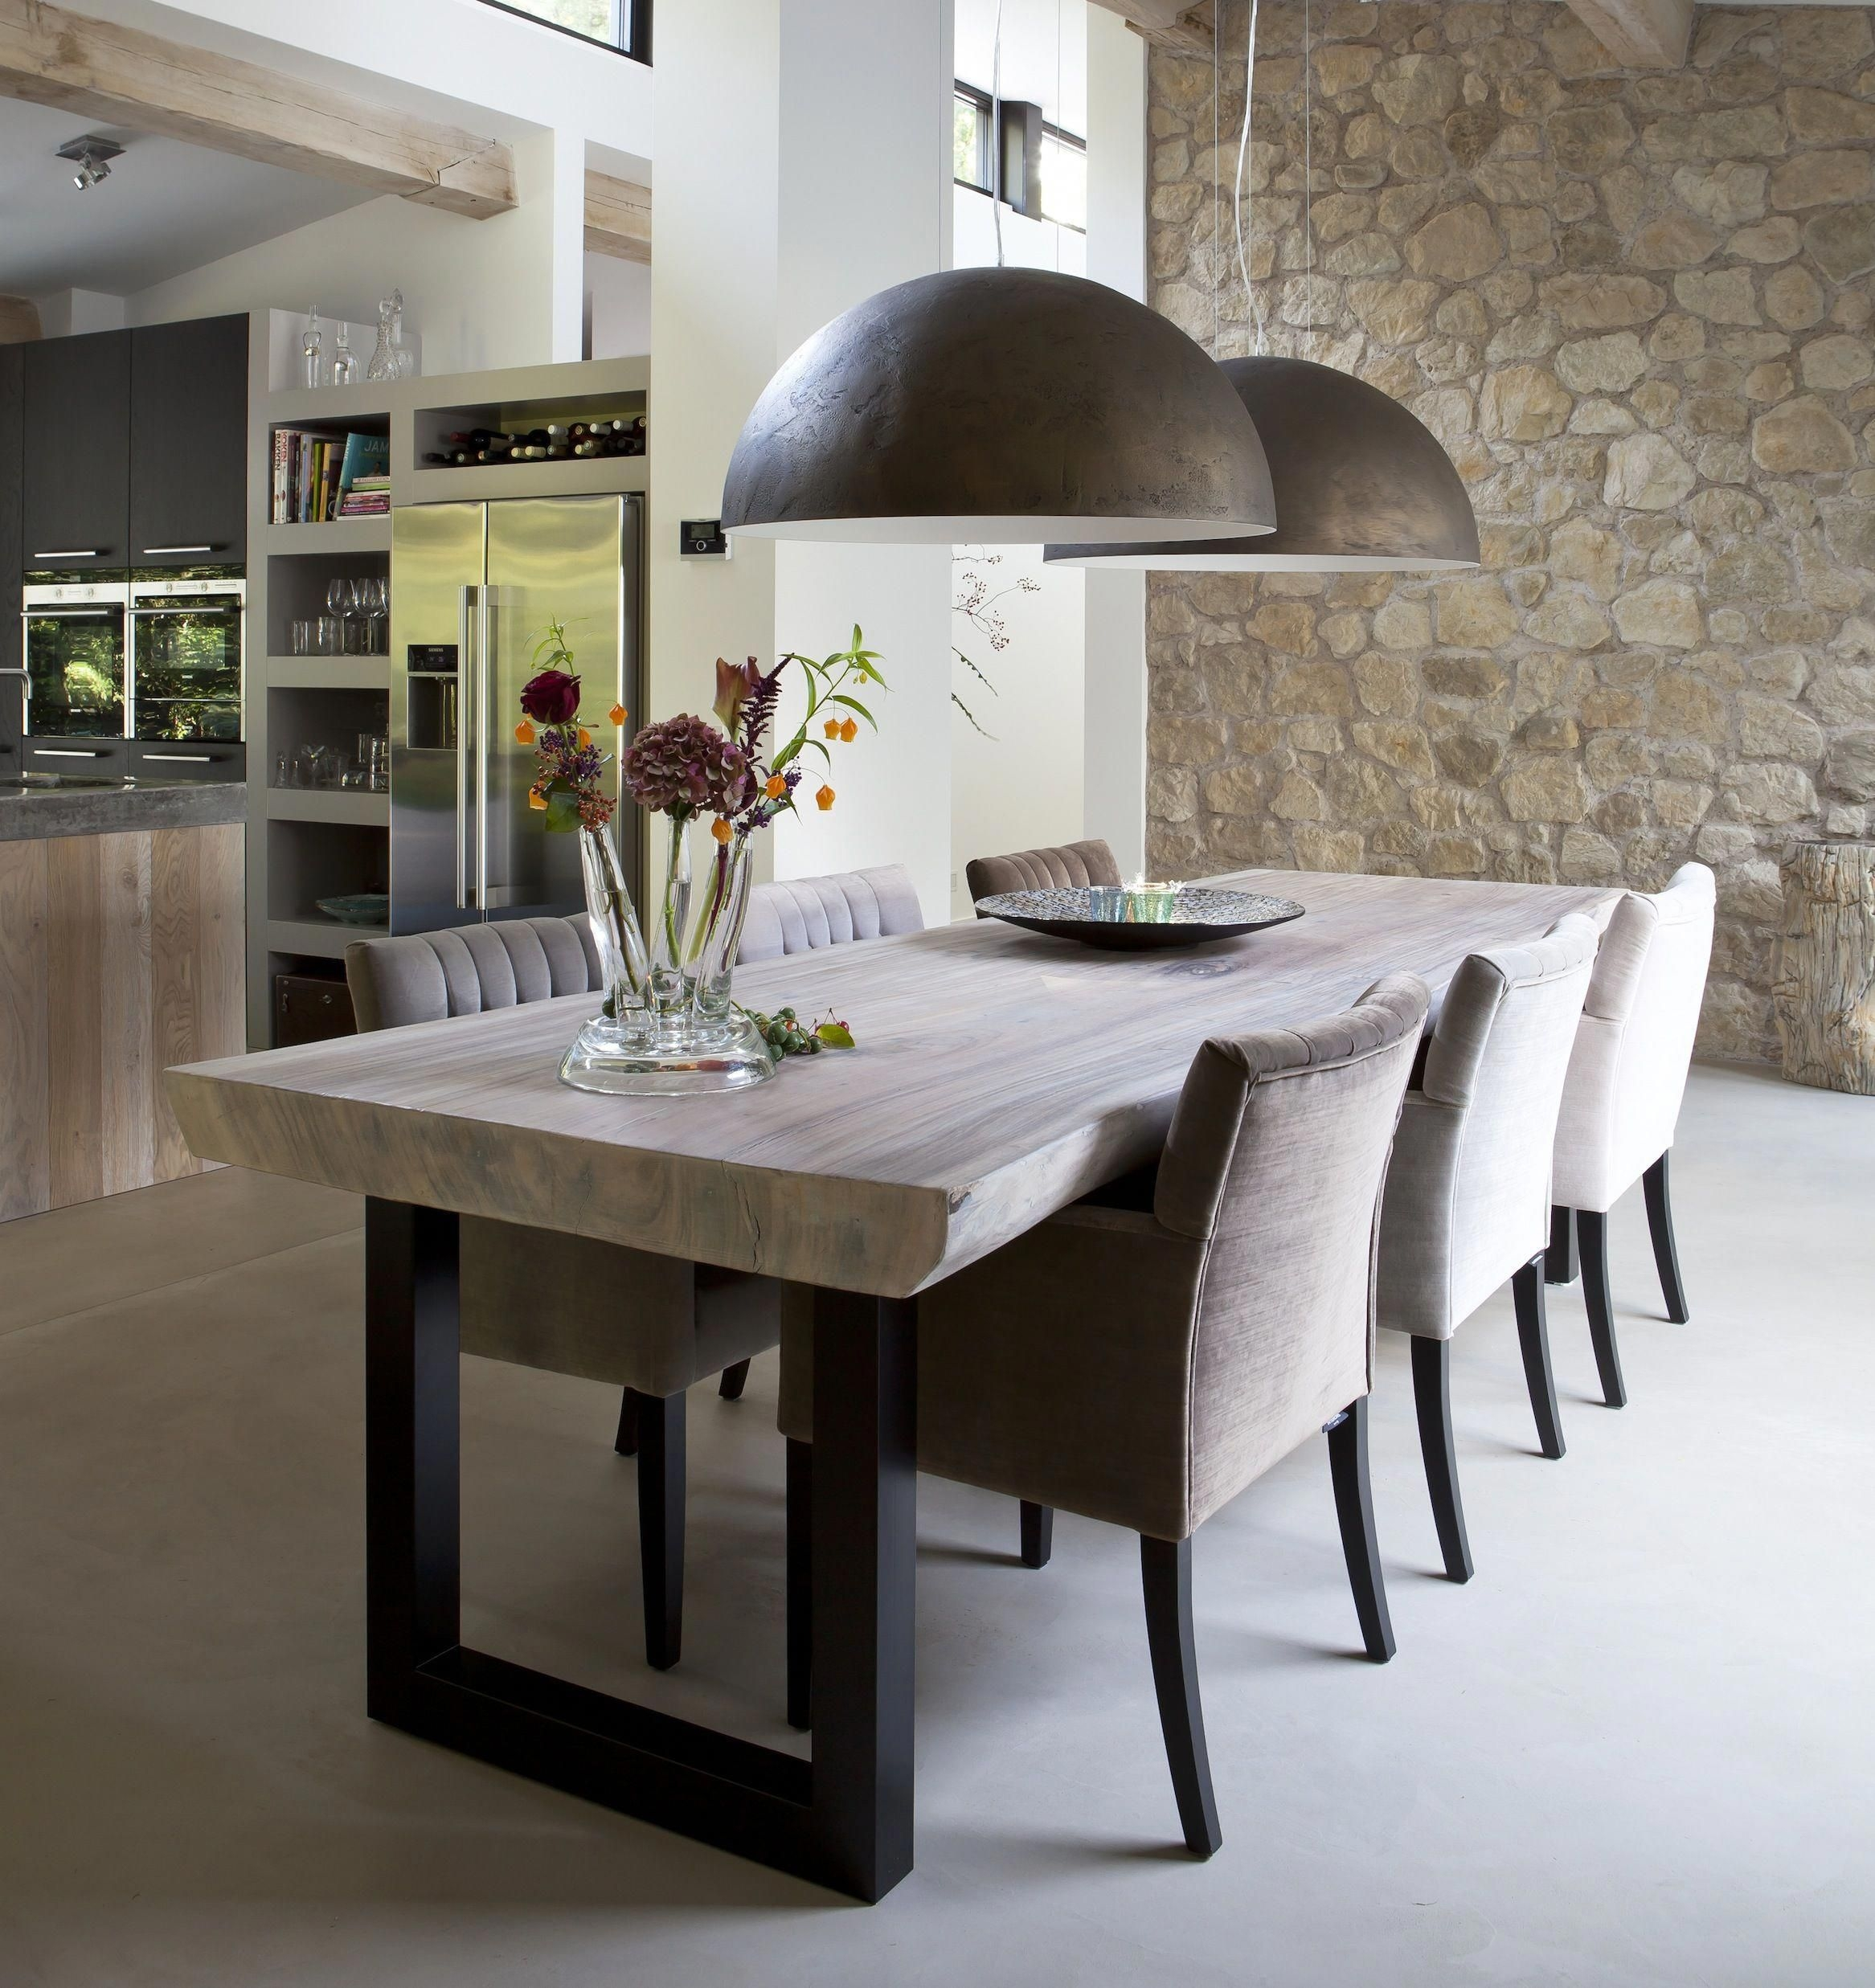 rustic industrial dining table ideas on foter rh foter com Industrial Metal Dining Table Fixer Upper Dining Rooms